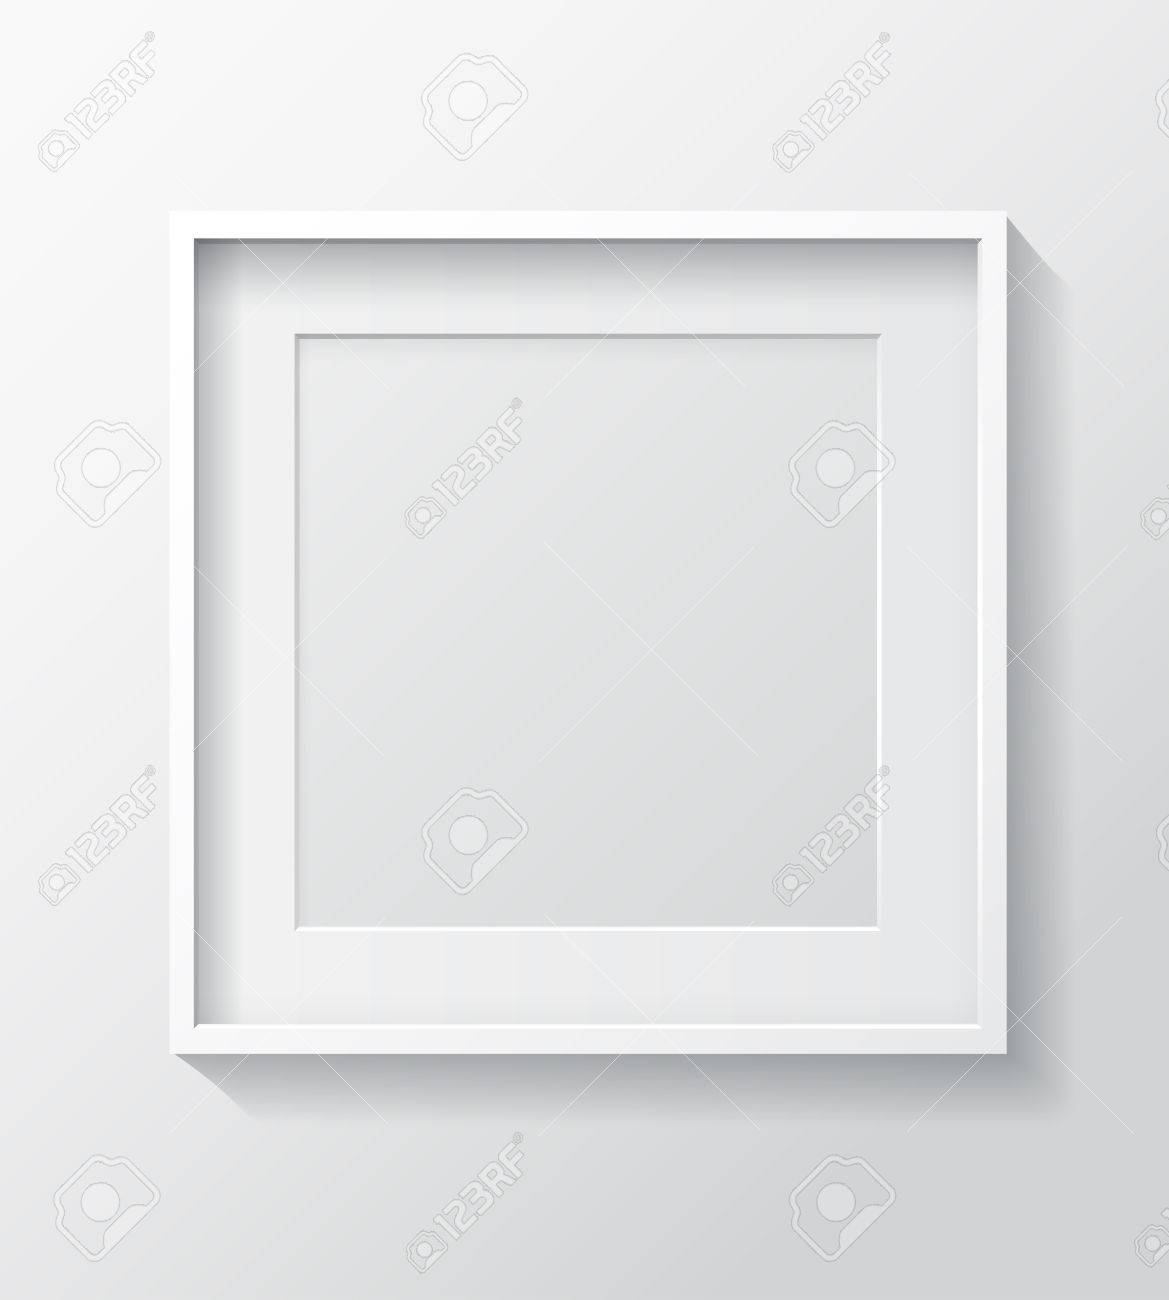 Realistic Square White Blank Picture Frame, Hanging On A White ...